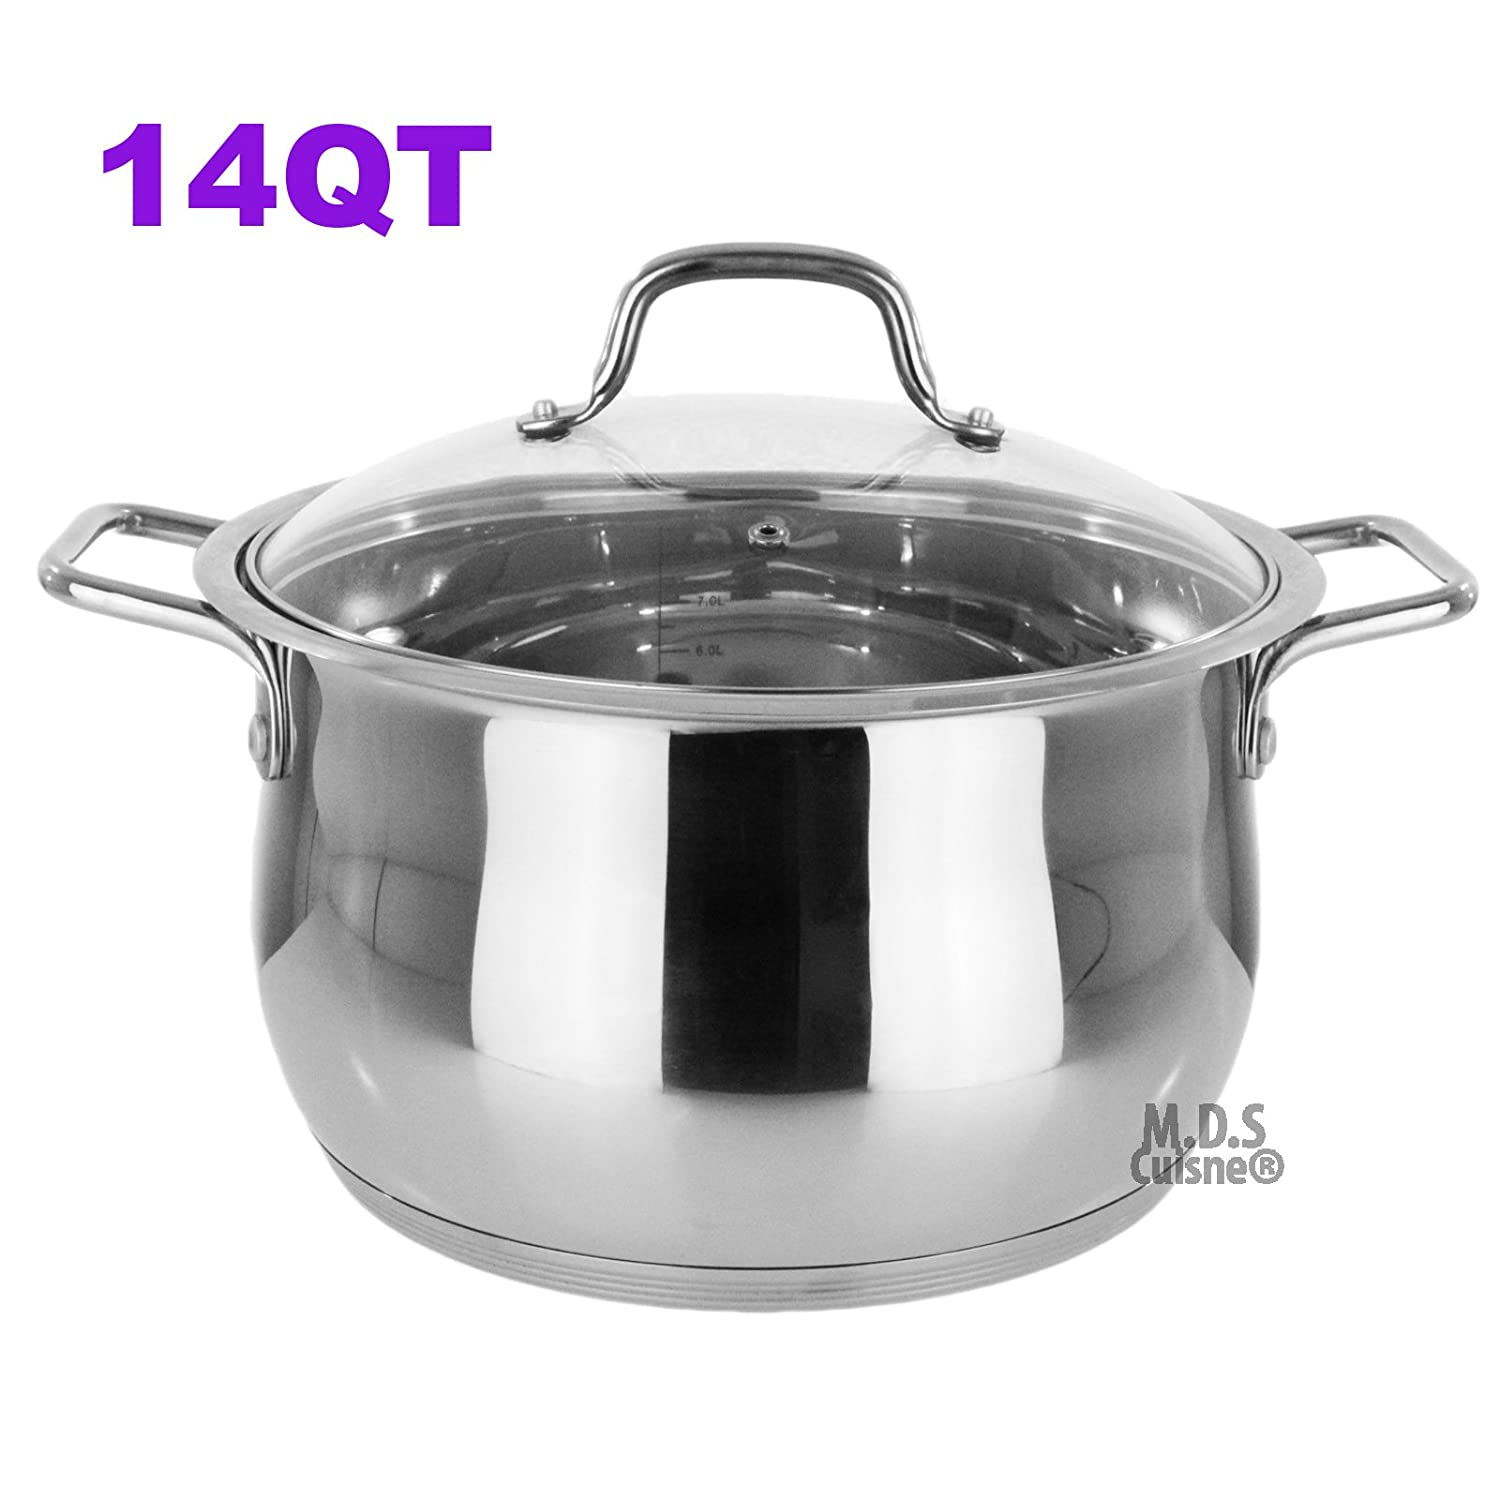 Stockpot 14 Qt Stainless Steel Commercial Tri-Ply Capsule Bottom Pot Dutch Oven Stock Pot